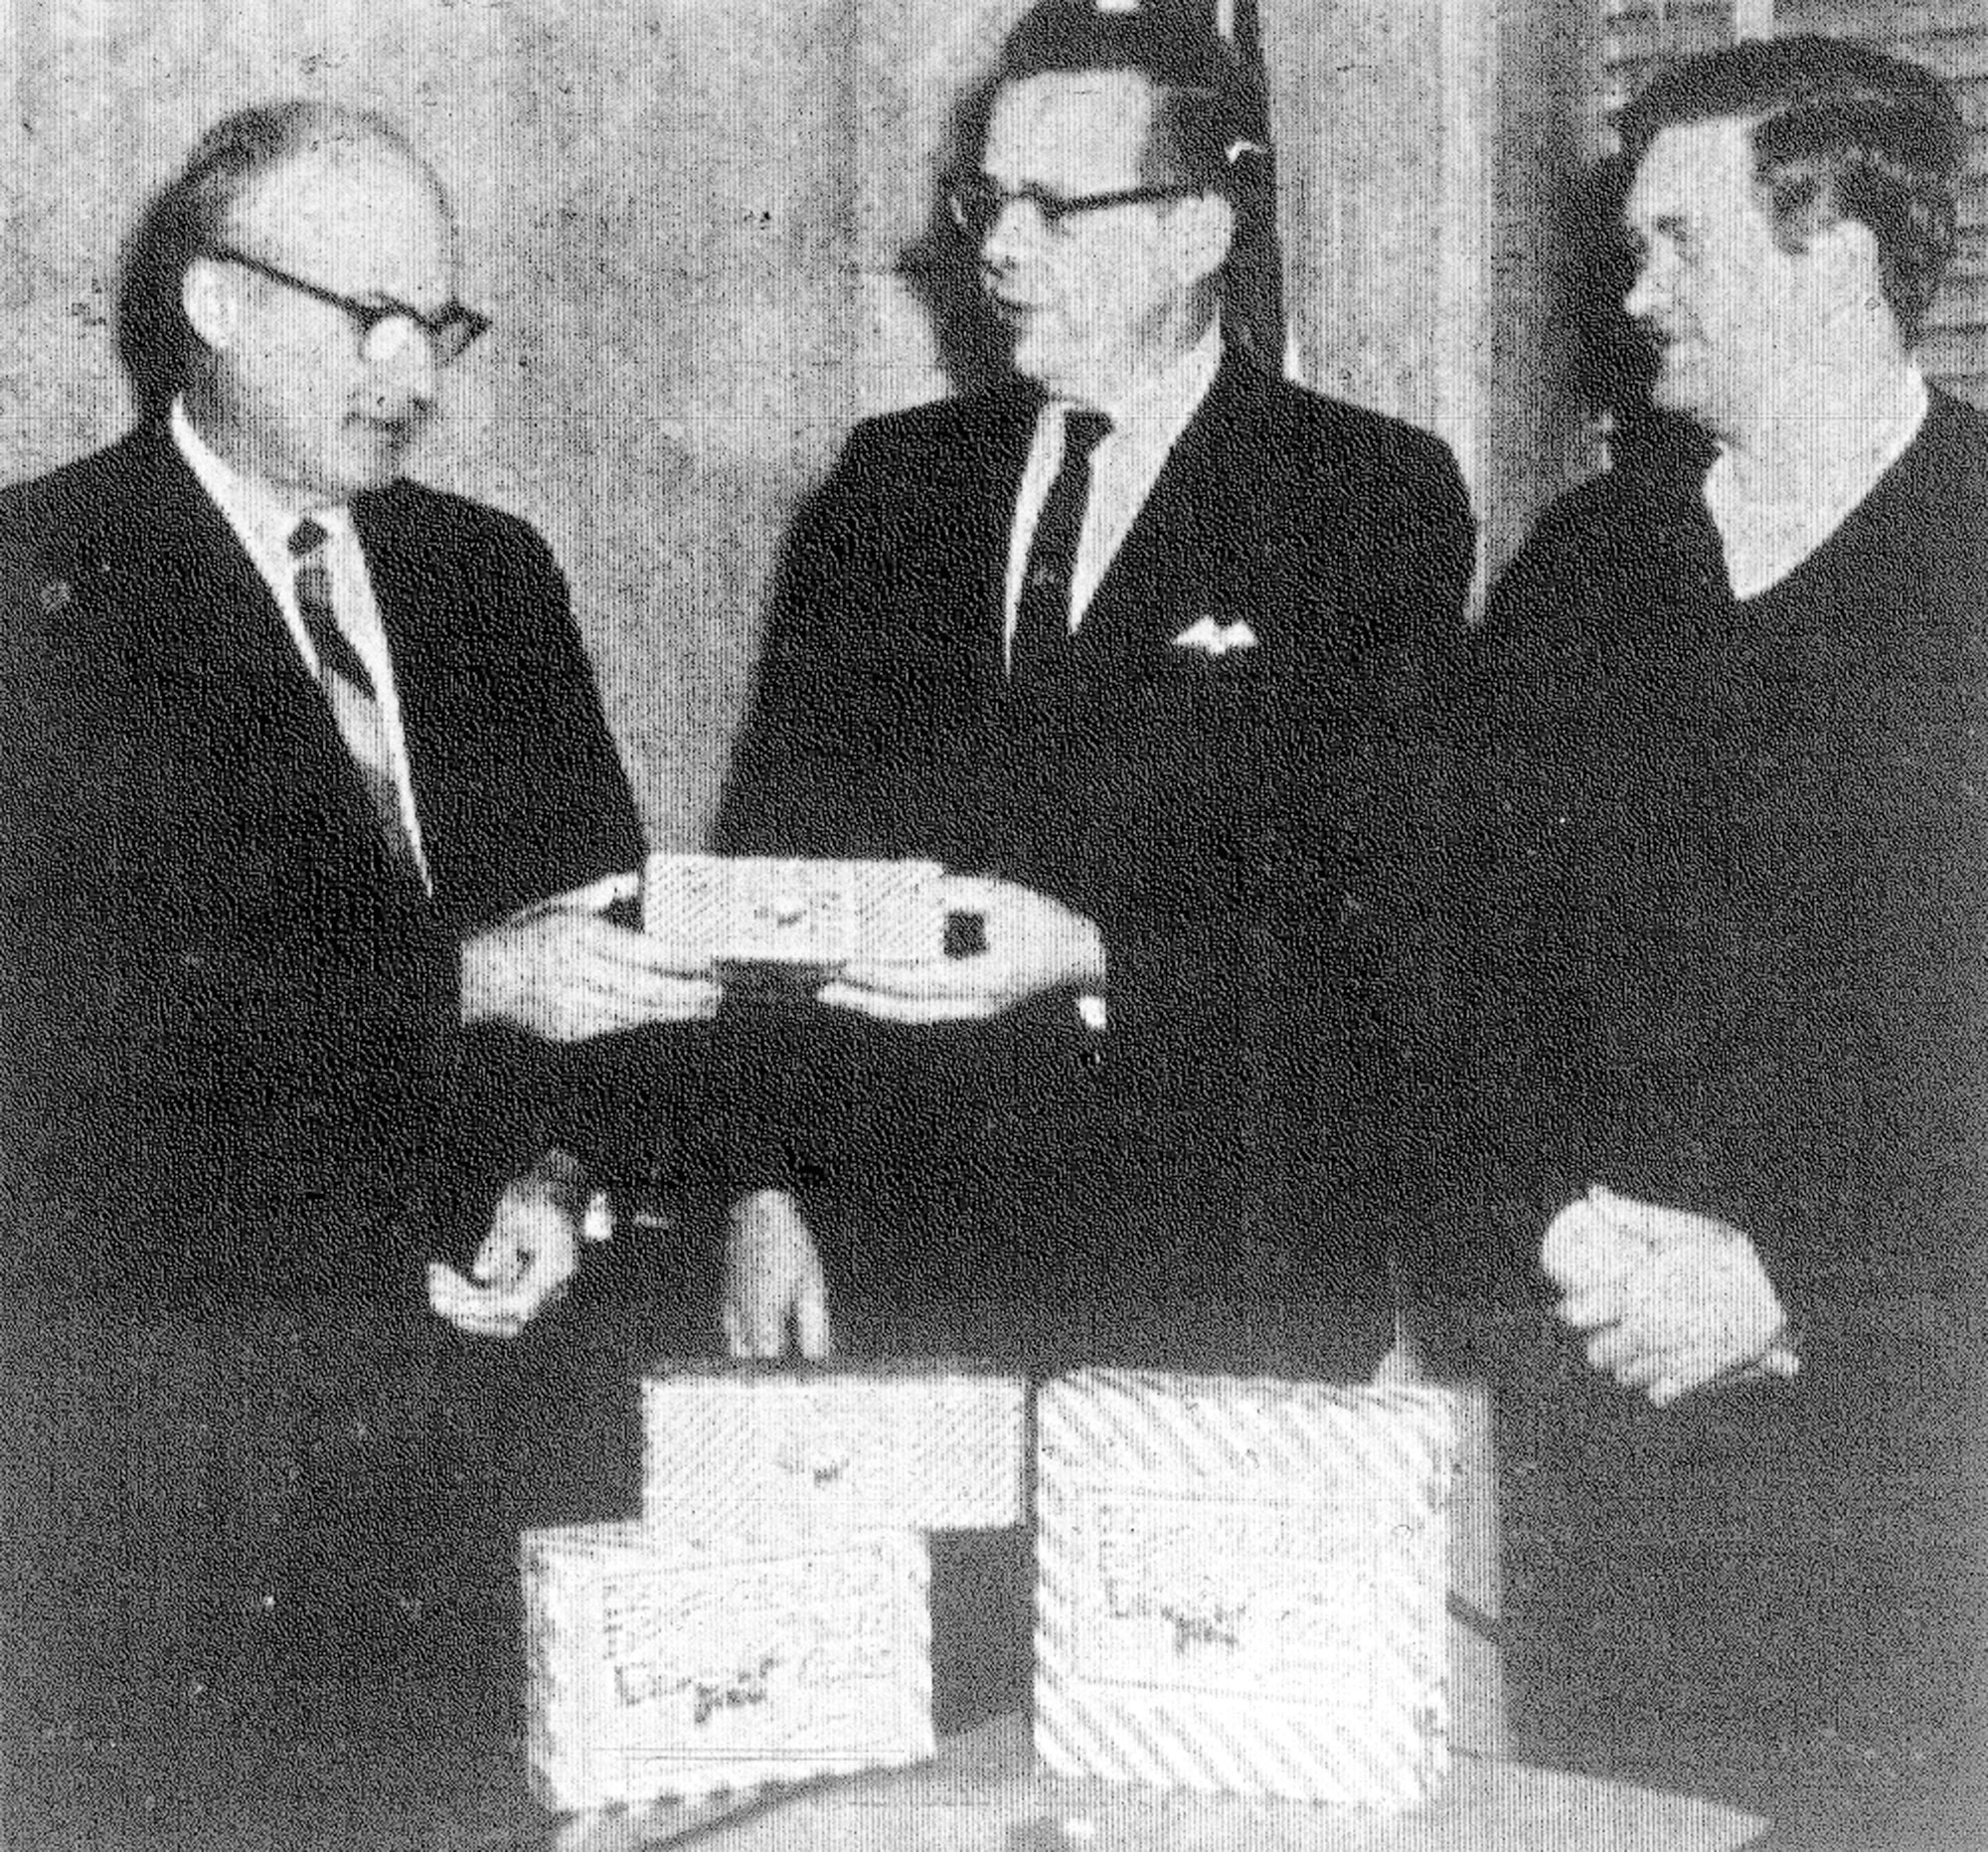 SUMTER ITEM FILE PHOTO  1968 - Mayor Robert E. Graham, left, buys the first fruitcake to kick off the annual Sumter Civitan cake sale. Civitans Don E. Ague, center, and Lester McDaniel make the first sale to him.